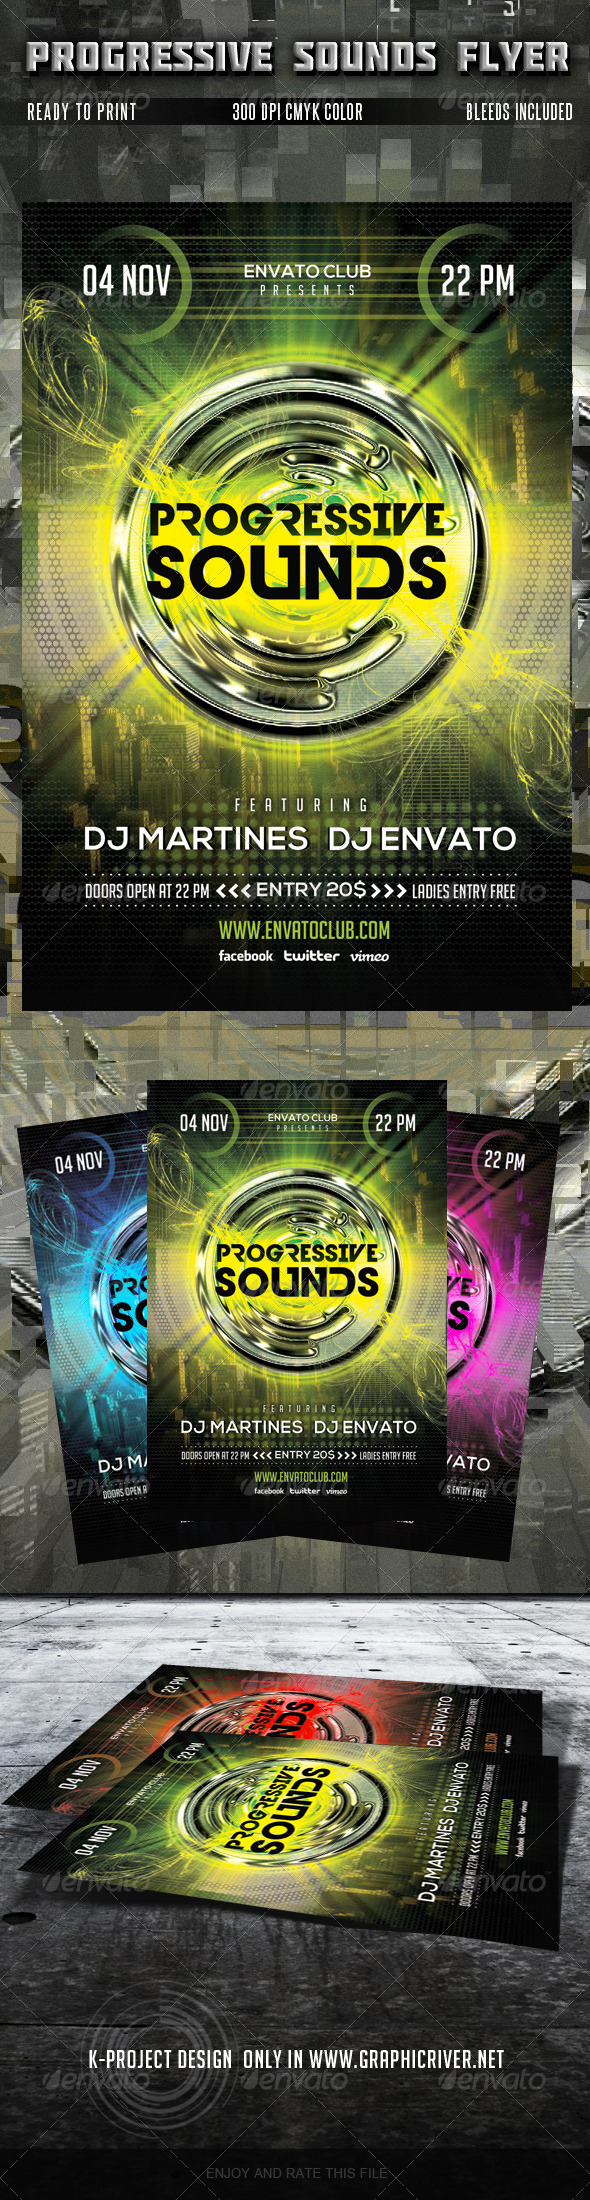 GraphicRiver Progressive Sounds Flyer 5779724